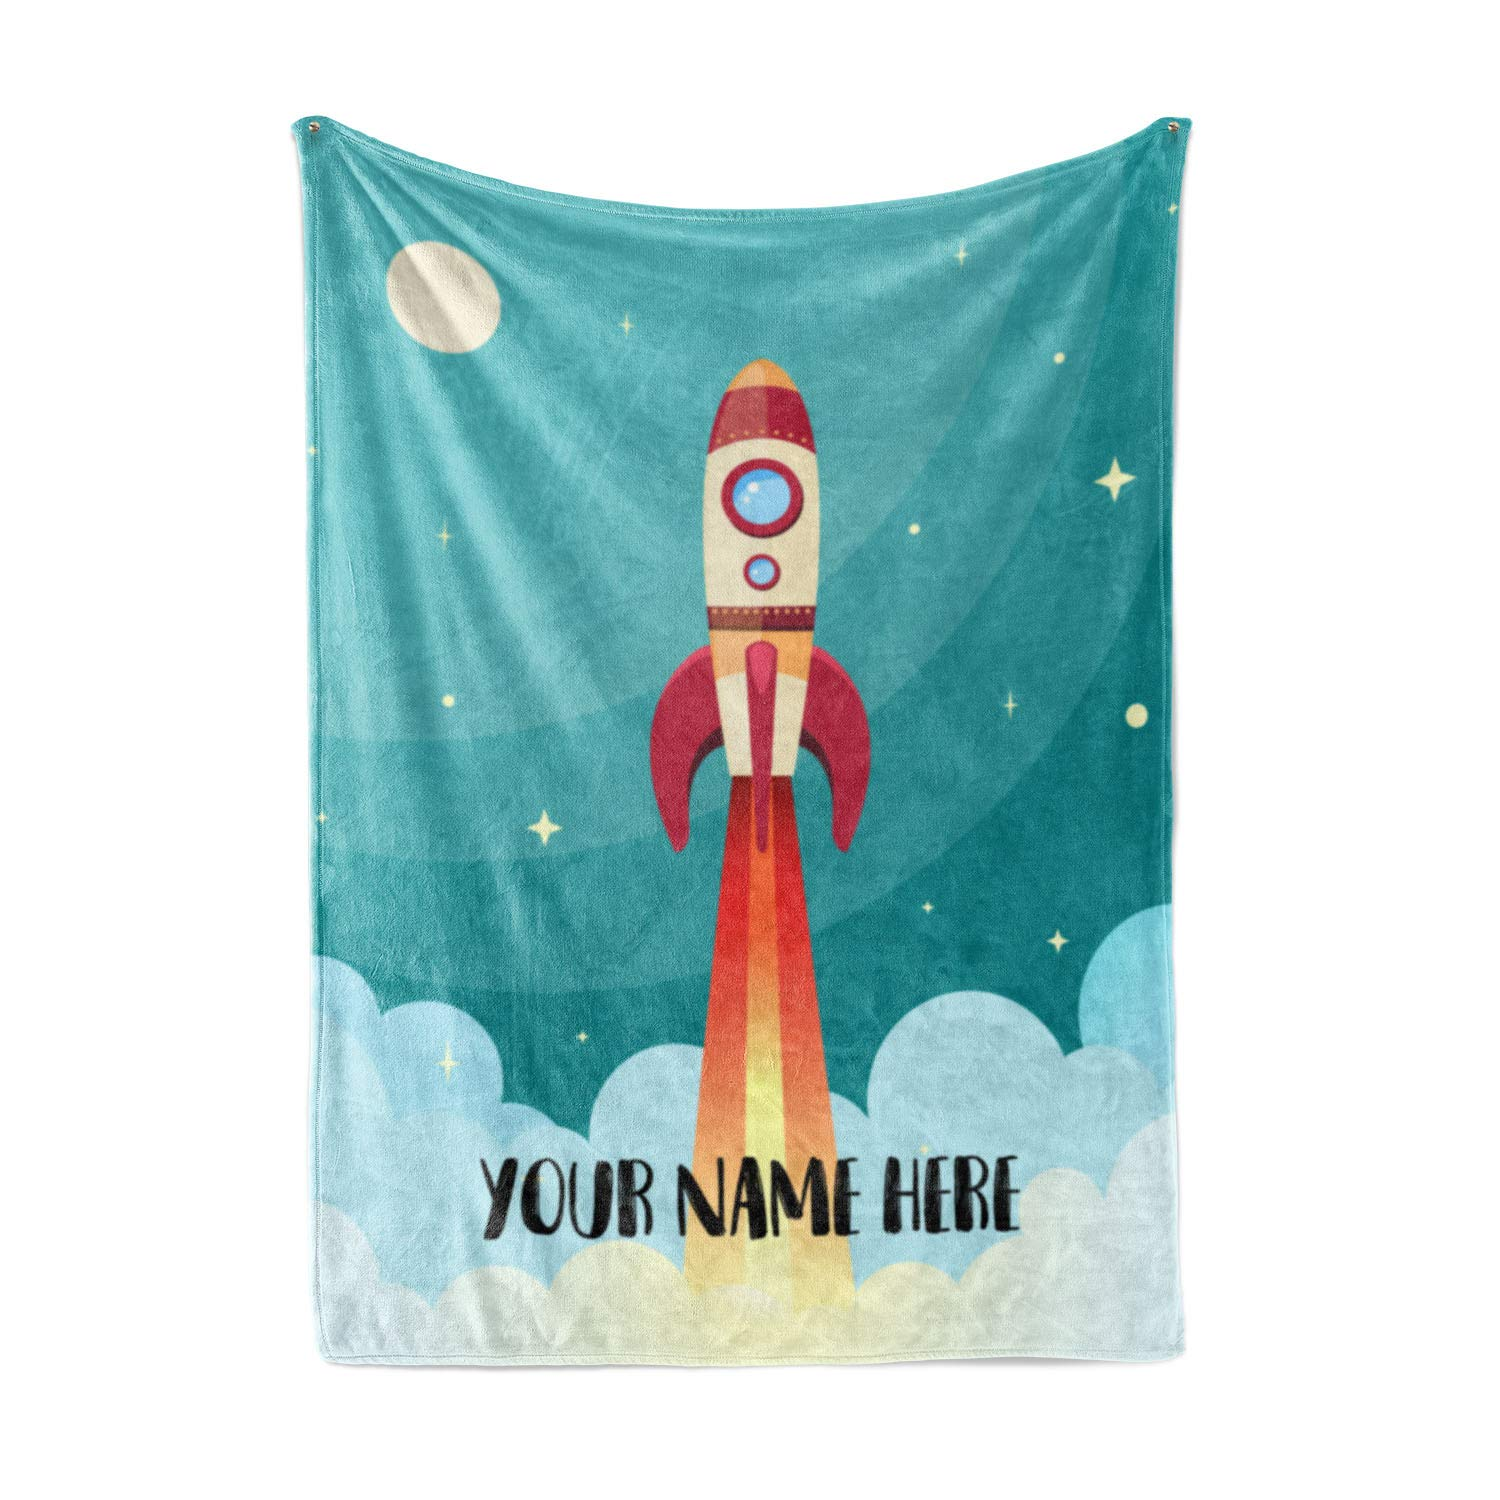 Personalized Kids Rocket Launch Space Theme Fleece Blanket - Boys Girls Toddler Baby Throw Blanket Perfect for Travel, Portable, Nursery (50'' x 60'' - Child) by Personalized Corner